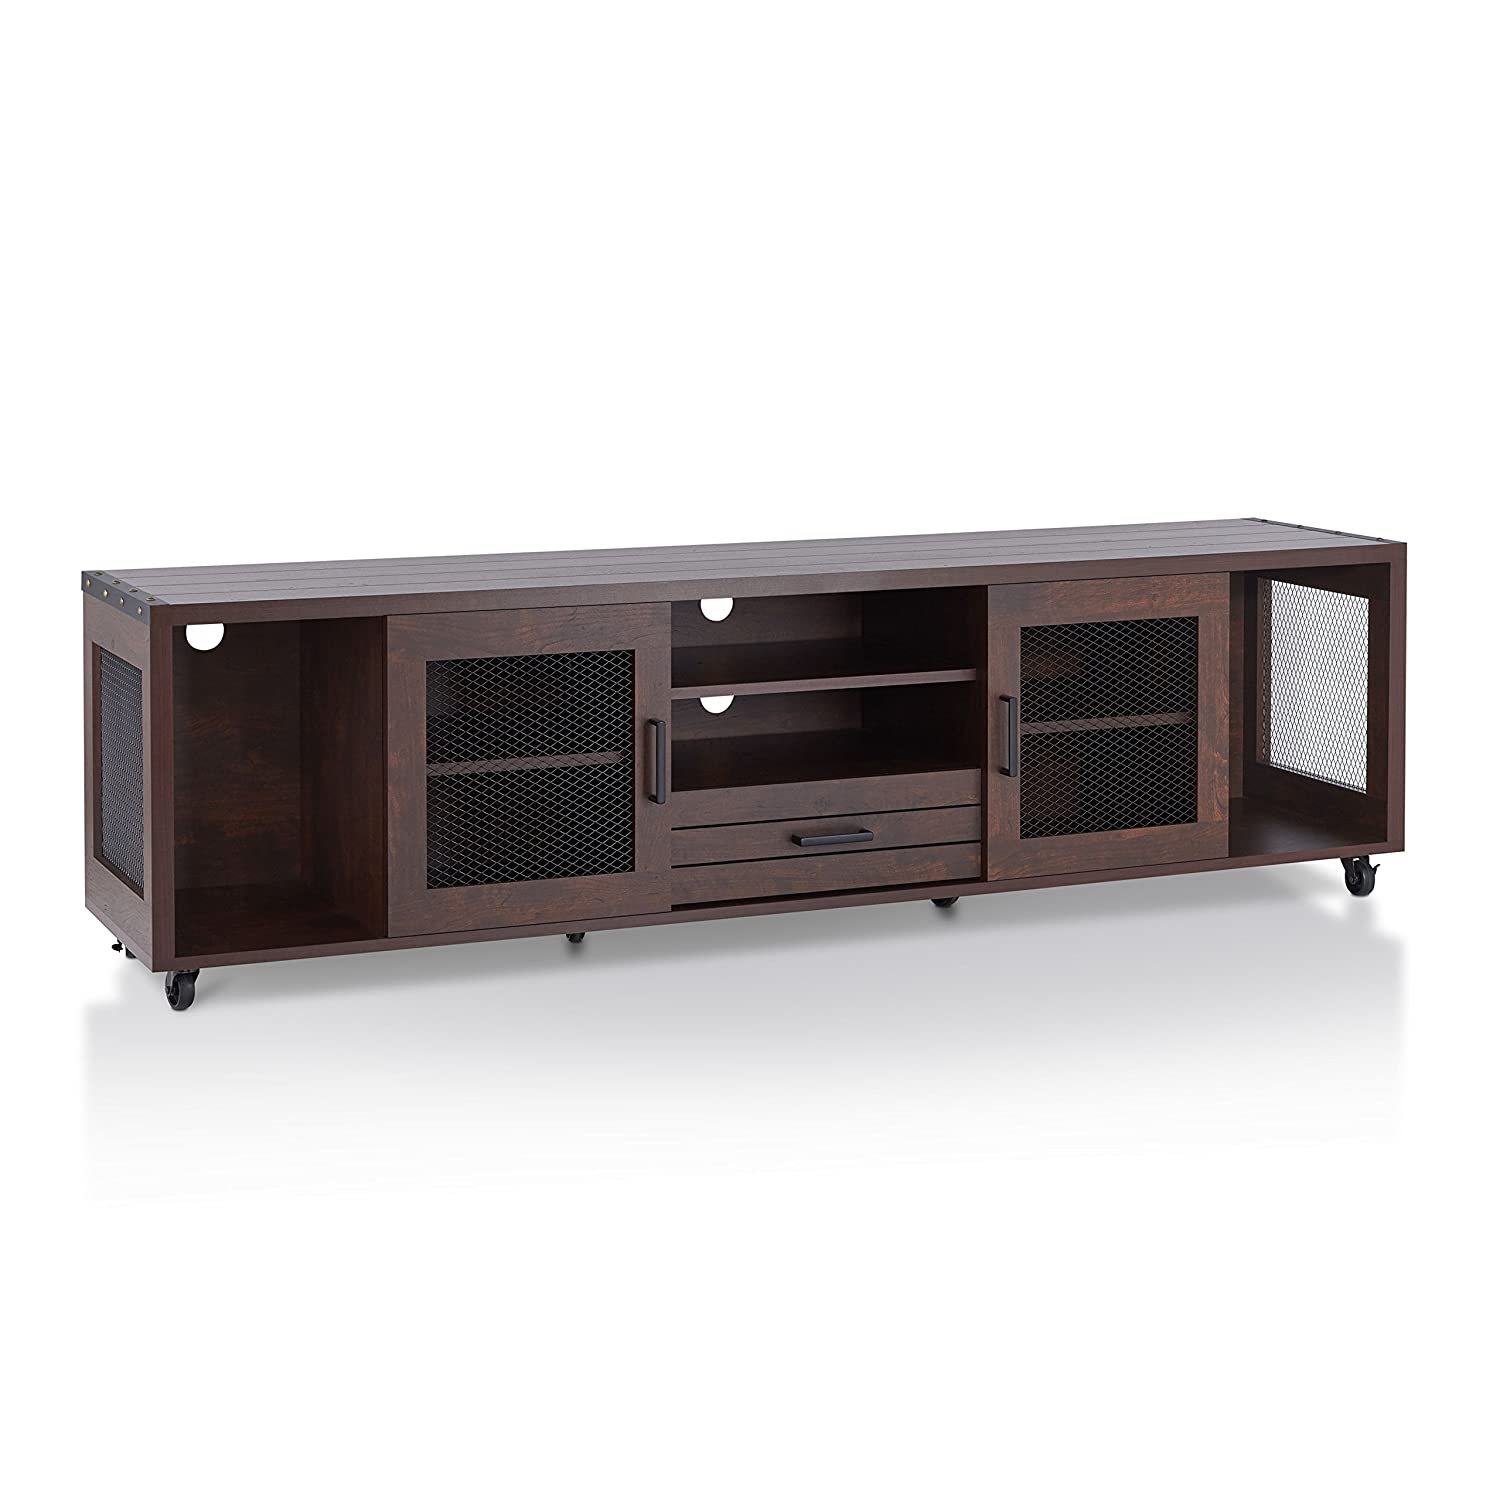 ioHOMES Penderton Transitional One Drawer Rectangular TV Stand with 4 Open Shelves, 2-Door Cabinet and Caster Wheels, 70 , Vintage Walnut